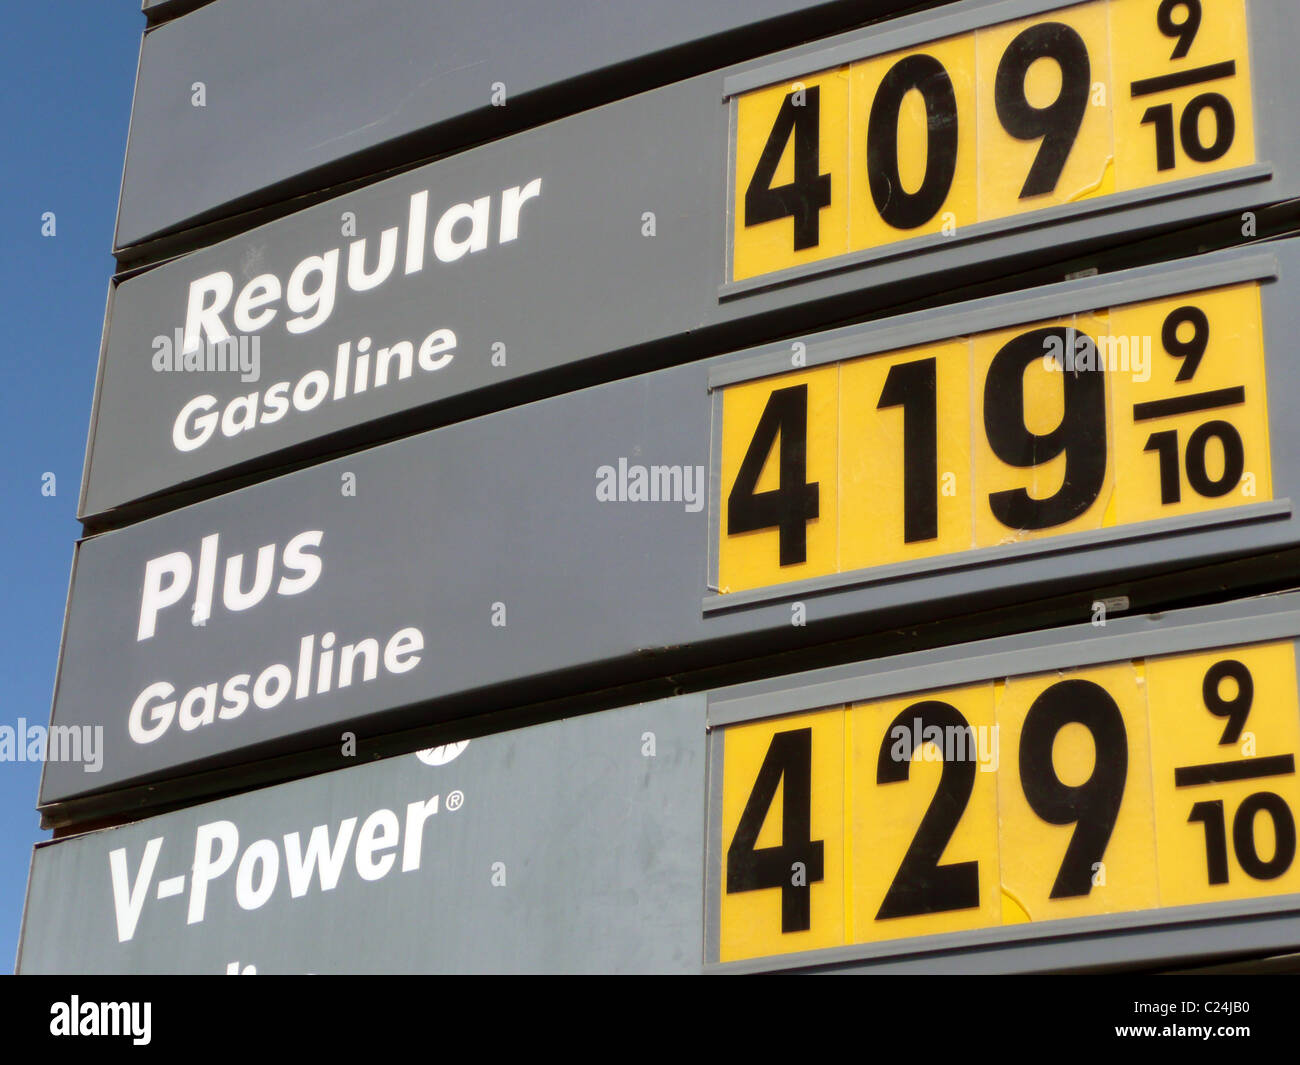 Shell gas station sign showing gasoline prices over $4 per gallon, San Francisco, California - Stock Image